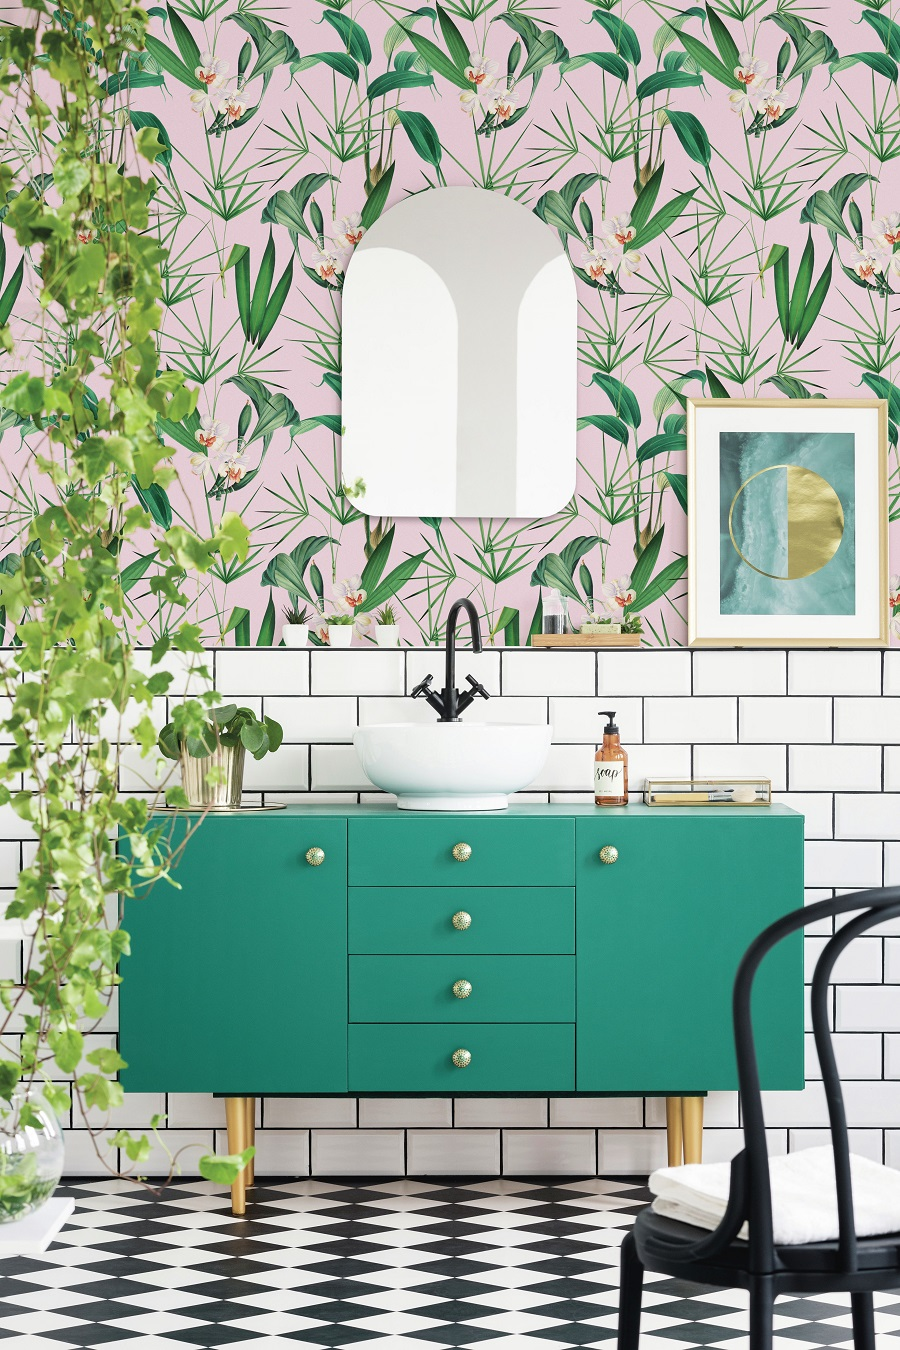 Palm Springs Inspiration Bathroom   Pink and Green Bathroom Inspiration   20 Photos That Will Prove Decorating with Pink and Green is the Next Big Thing